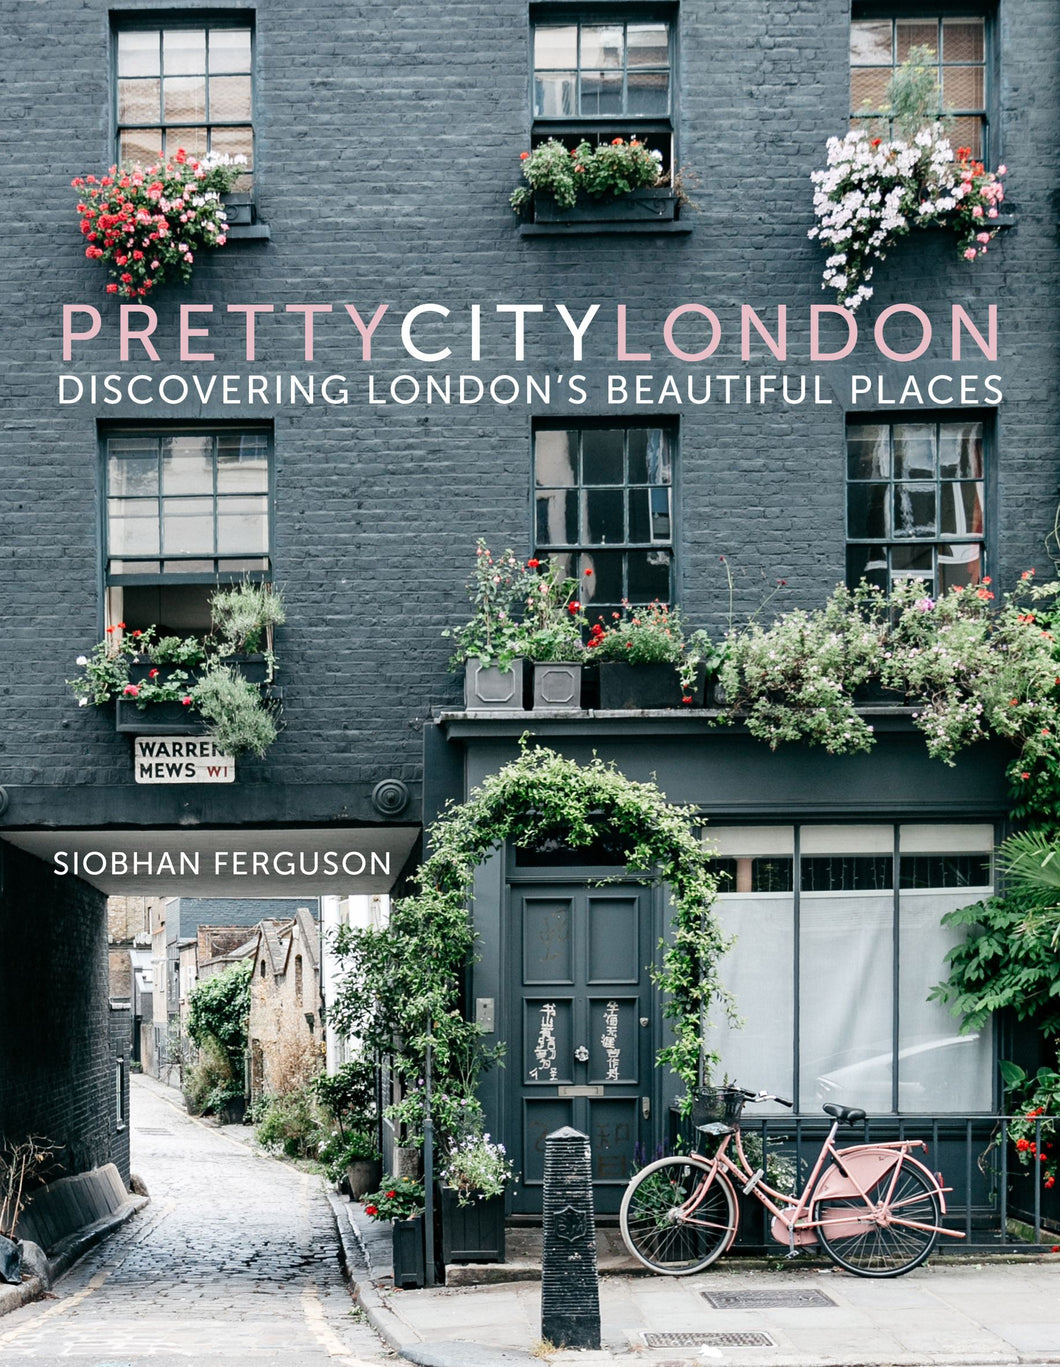 Pretty City London Book